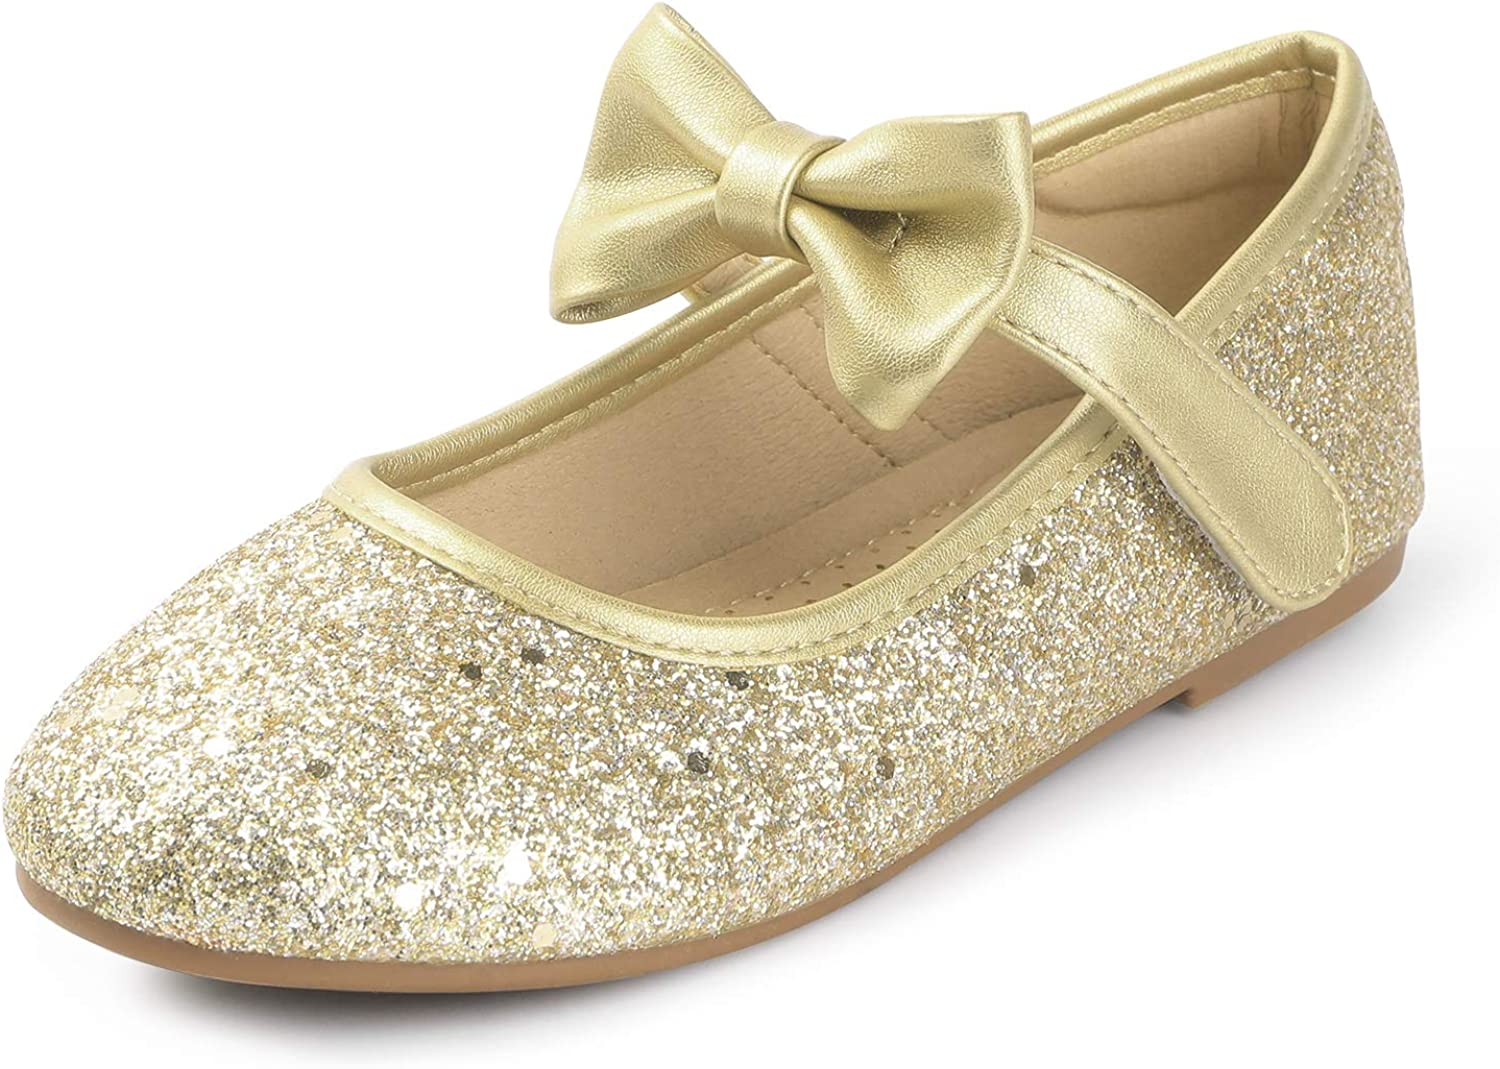 Heel The World Girls Flat Mary Jane Dress Shoes Ballerina Party Flats with Bow